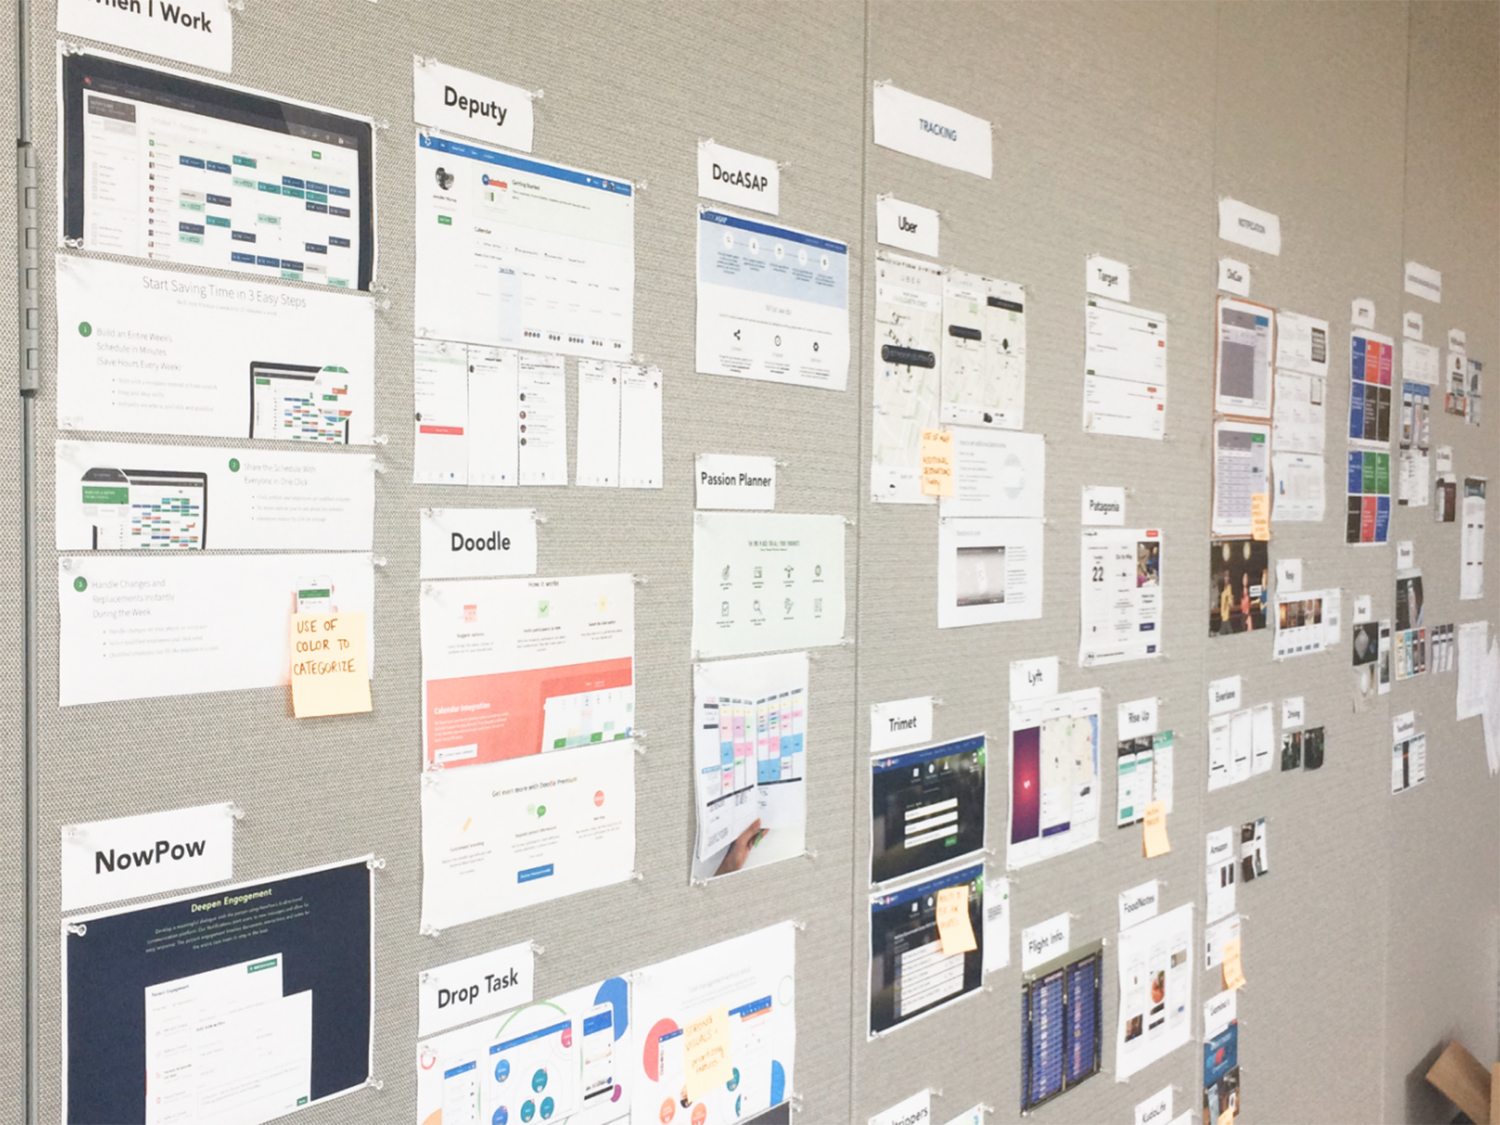 Research documents pinned up on a wall